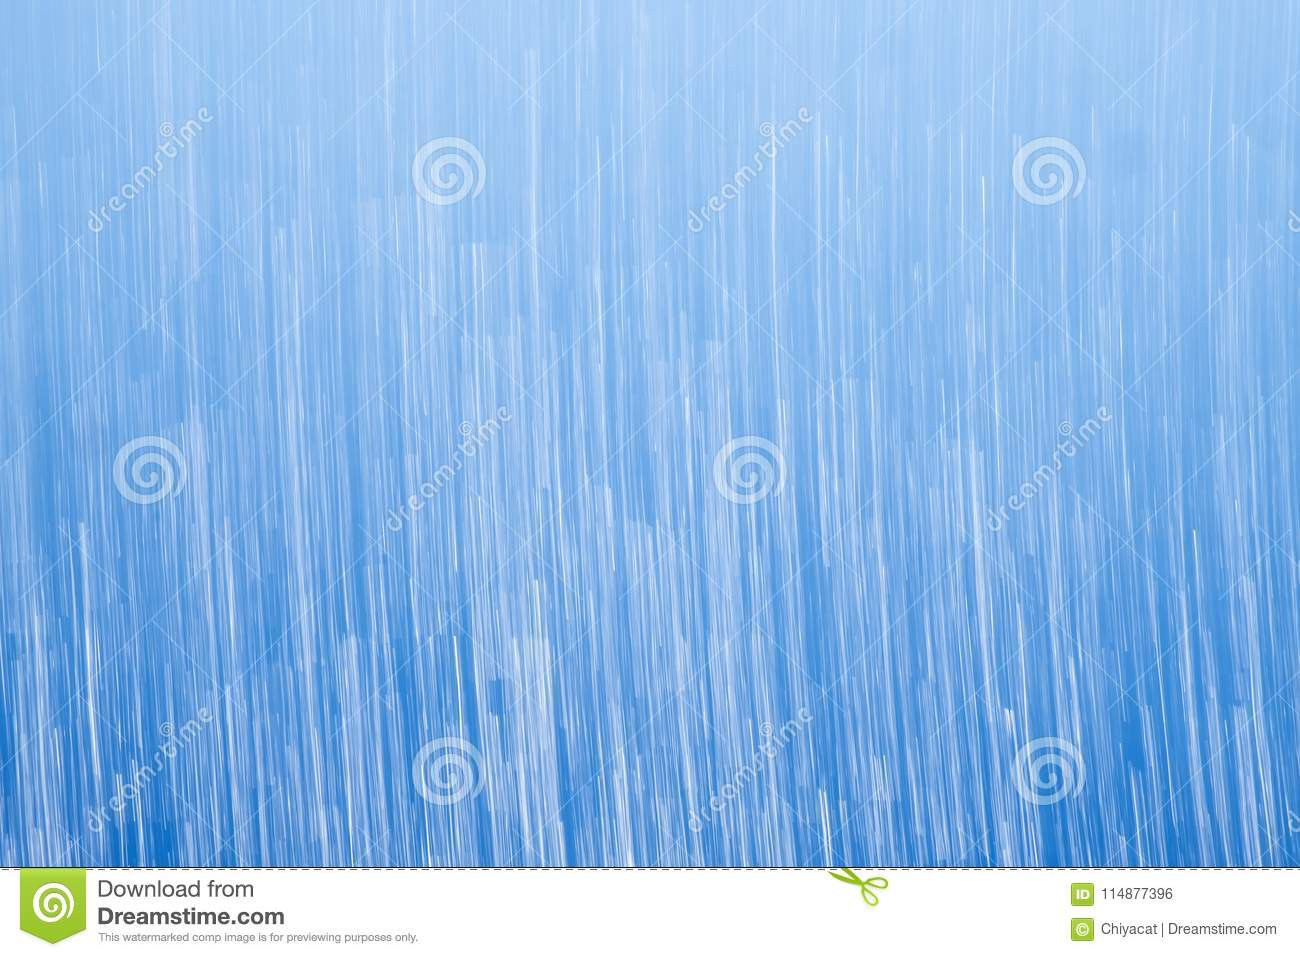 Abstract Blue and White Background #7